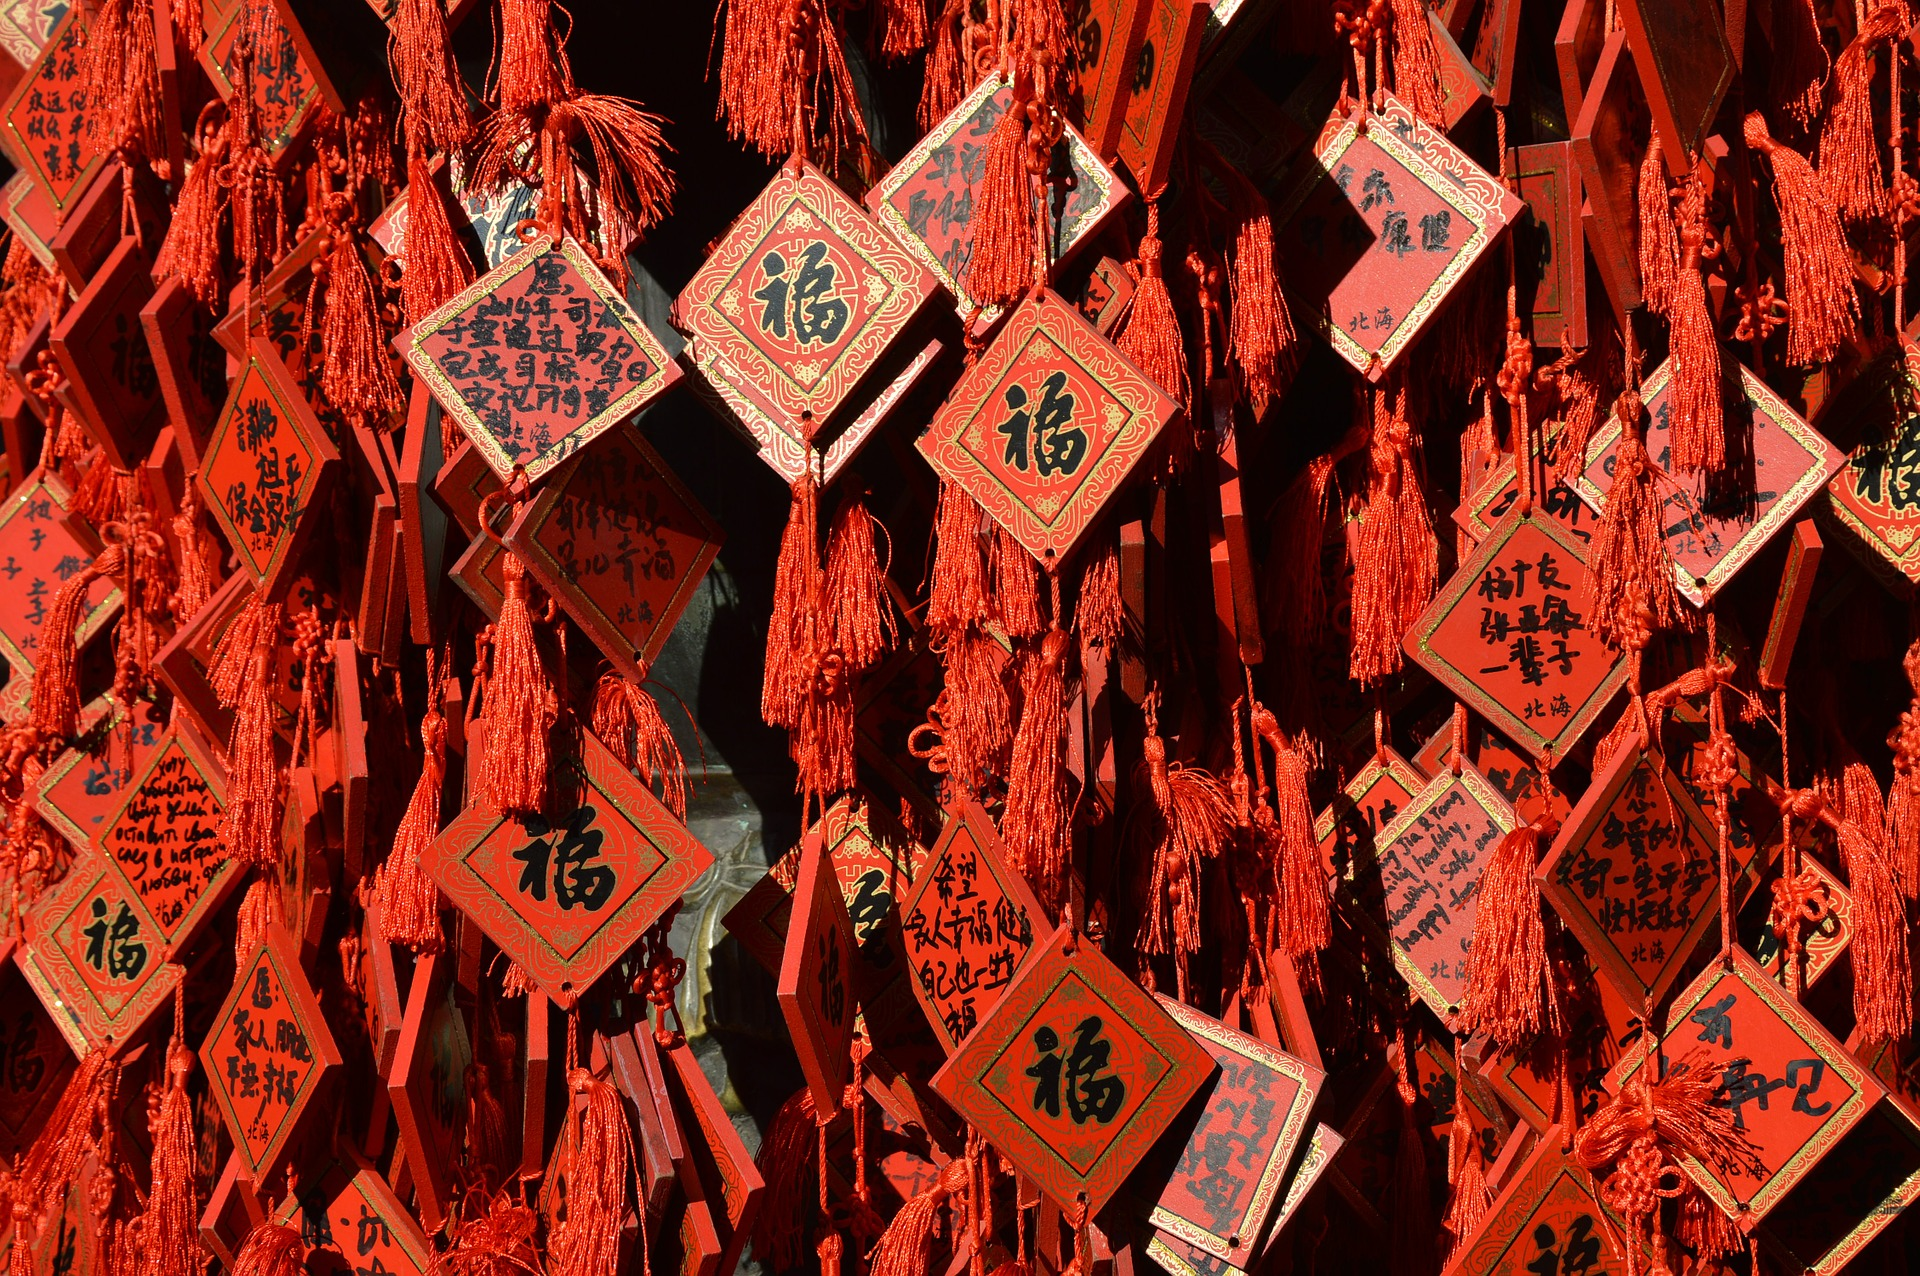 Chinese characters for health, luck and wealth